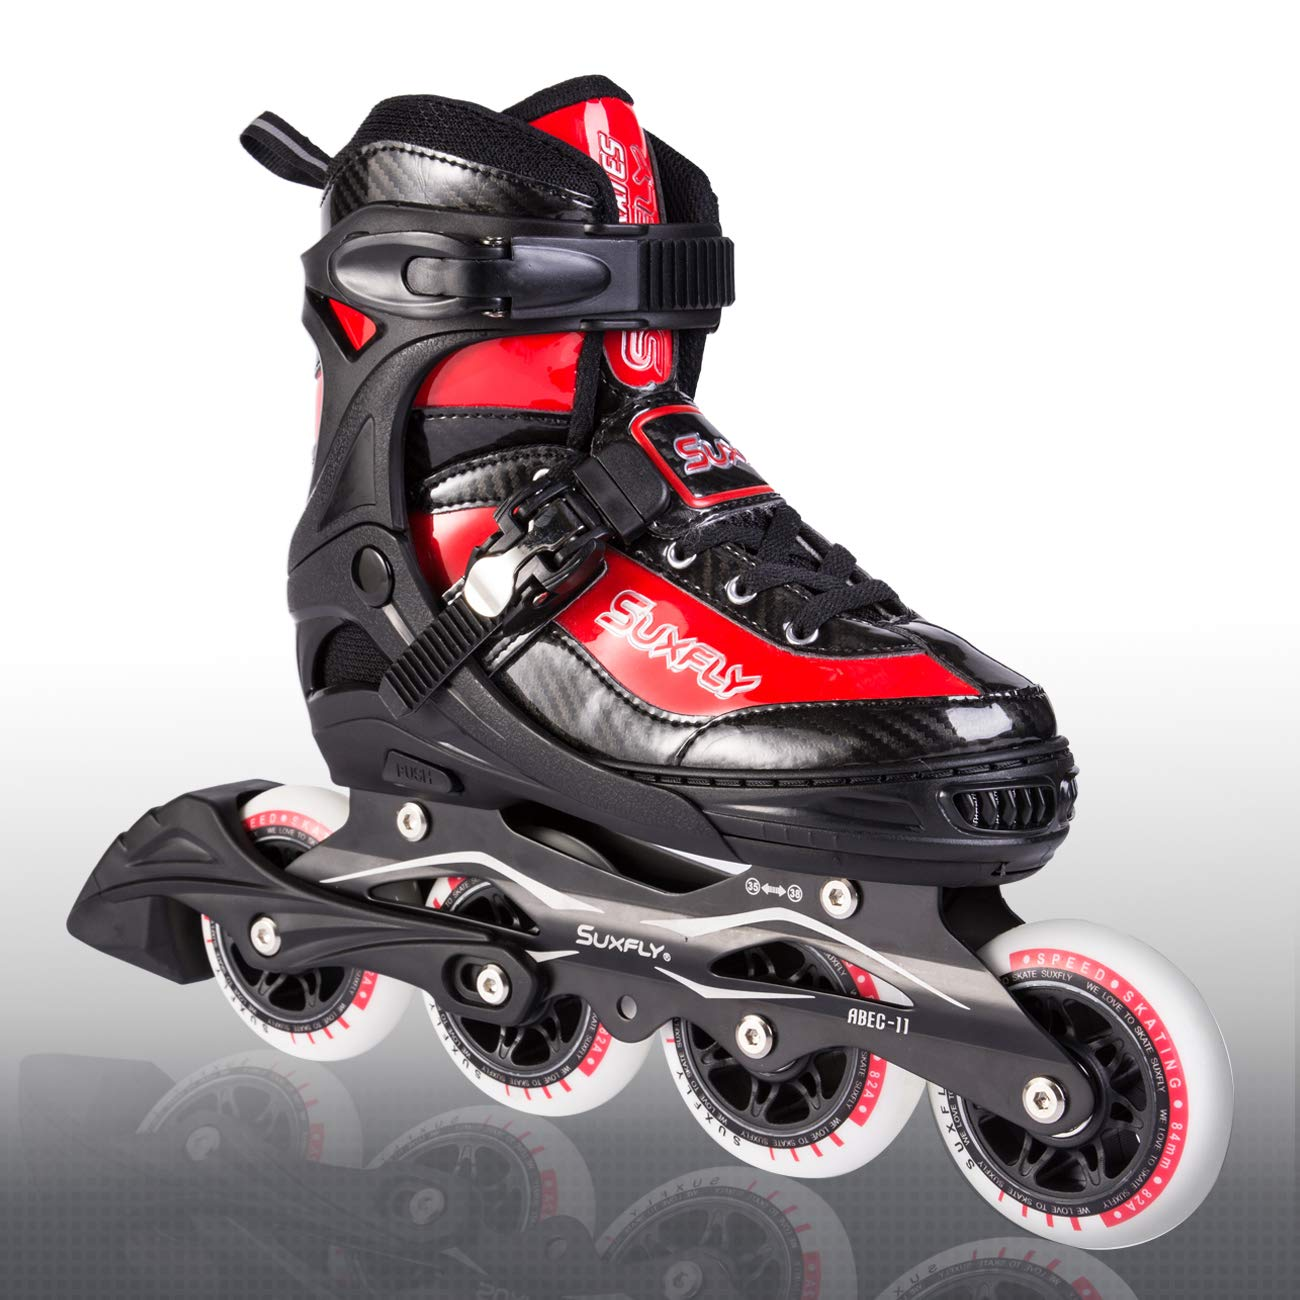 Kuxuan Herio Men Adjustable Rollerblades,Fun Performance Inline Skates 84mm/90mm Wheels for Boys,Girls and Ladies - Red L